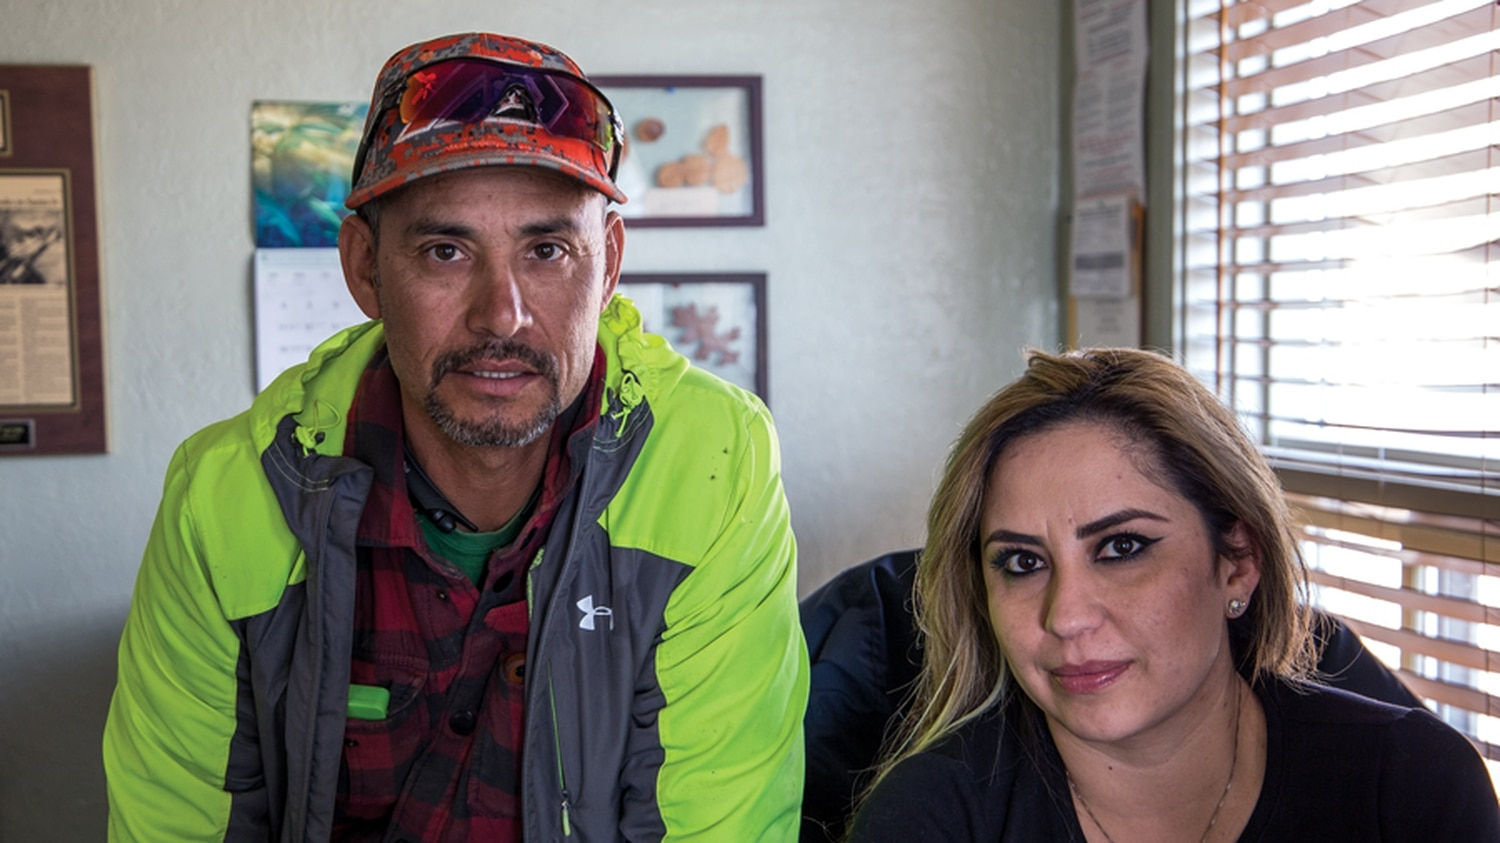 ICE agents visited Chevo Serna, owner of the Santa Fe Tree Farm, and secretary Bianca Herrera as part of a statewide enforcement effort. On their first visit, agents lied about who they were.